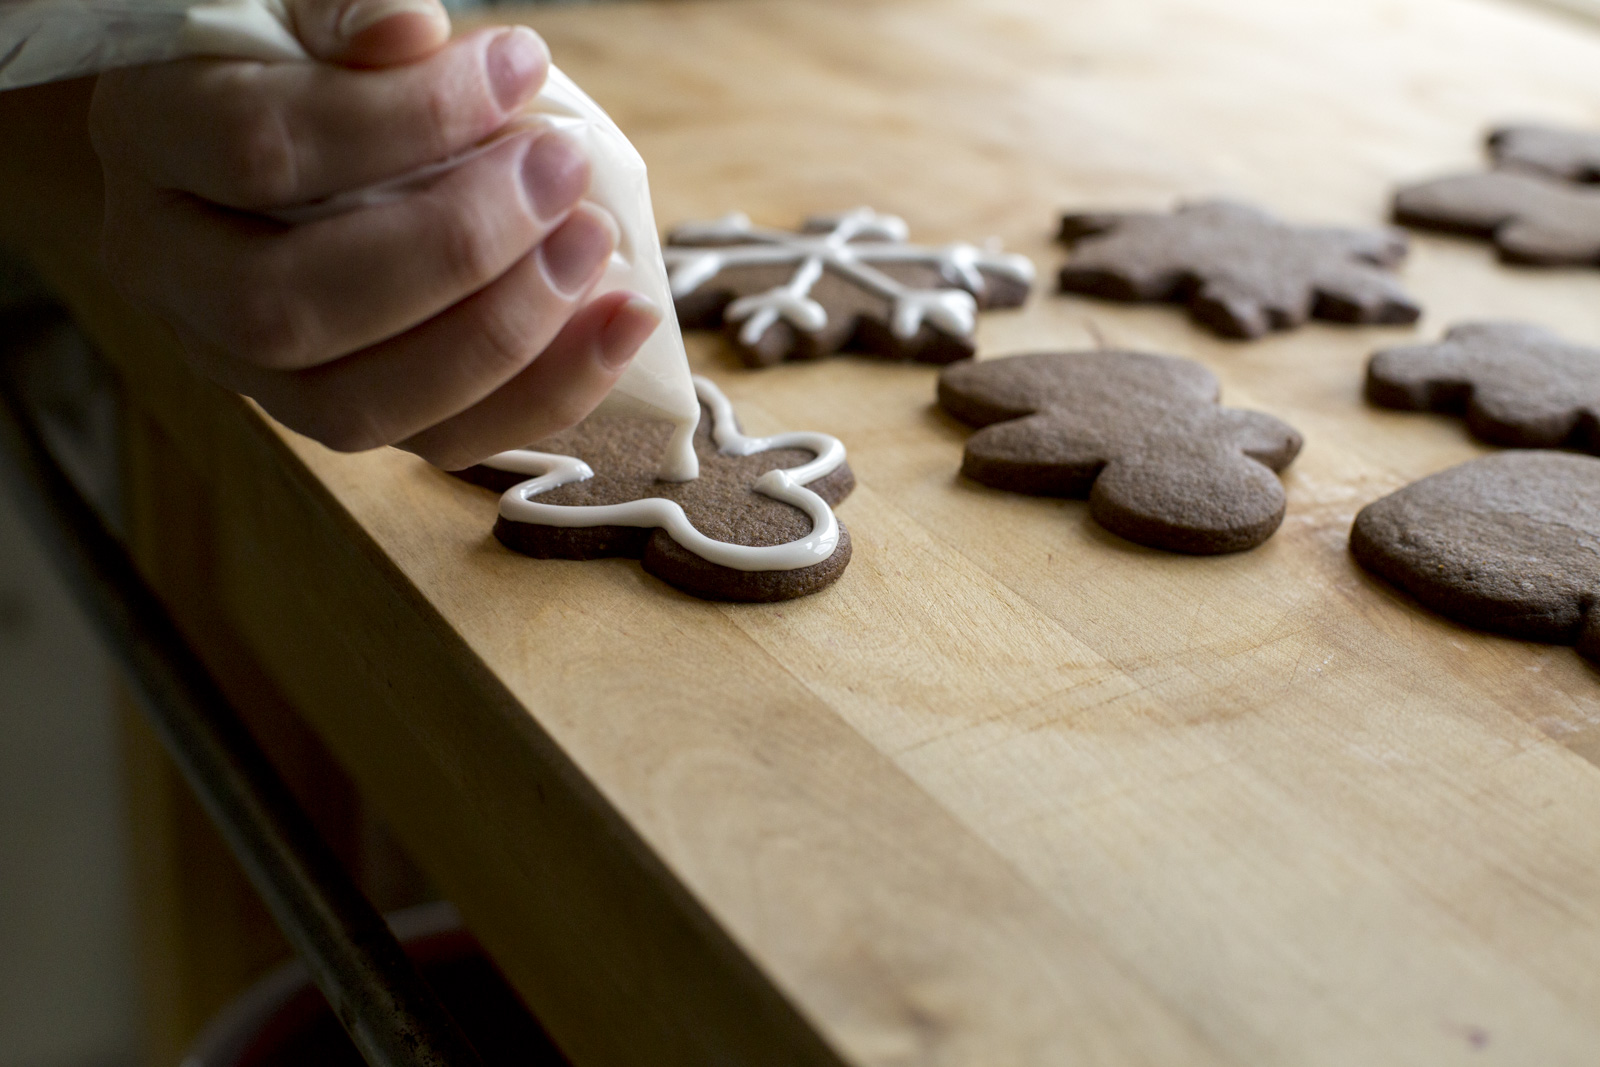 DunnDIY-SeattleWA-ChristmasCookies-15_16